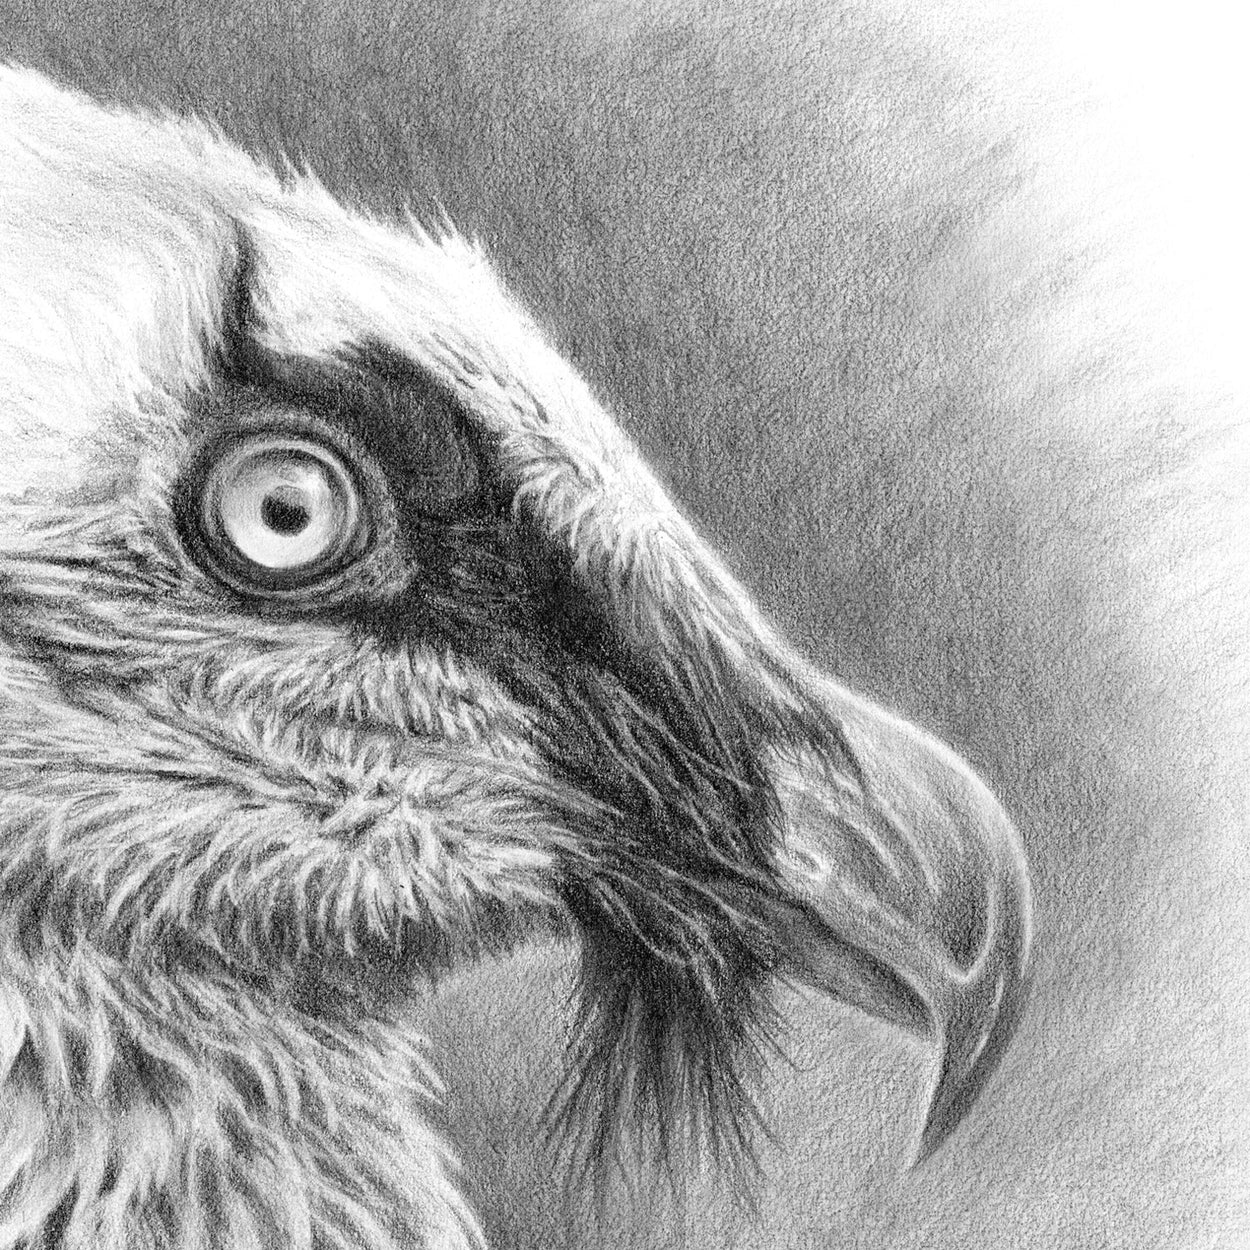 Bearded Vulture Drawing Close-up 1 - The Thriving Wild - Jill Dimond